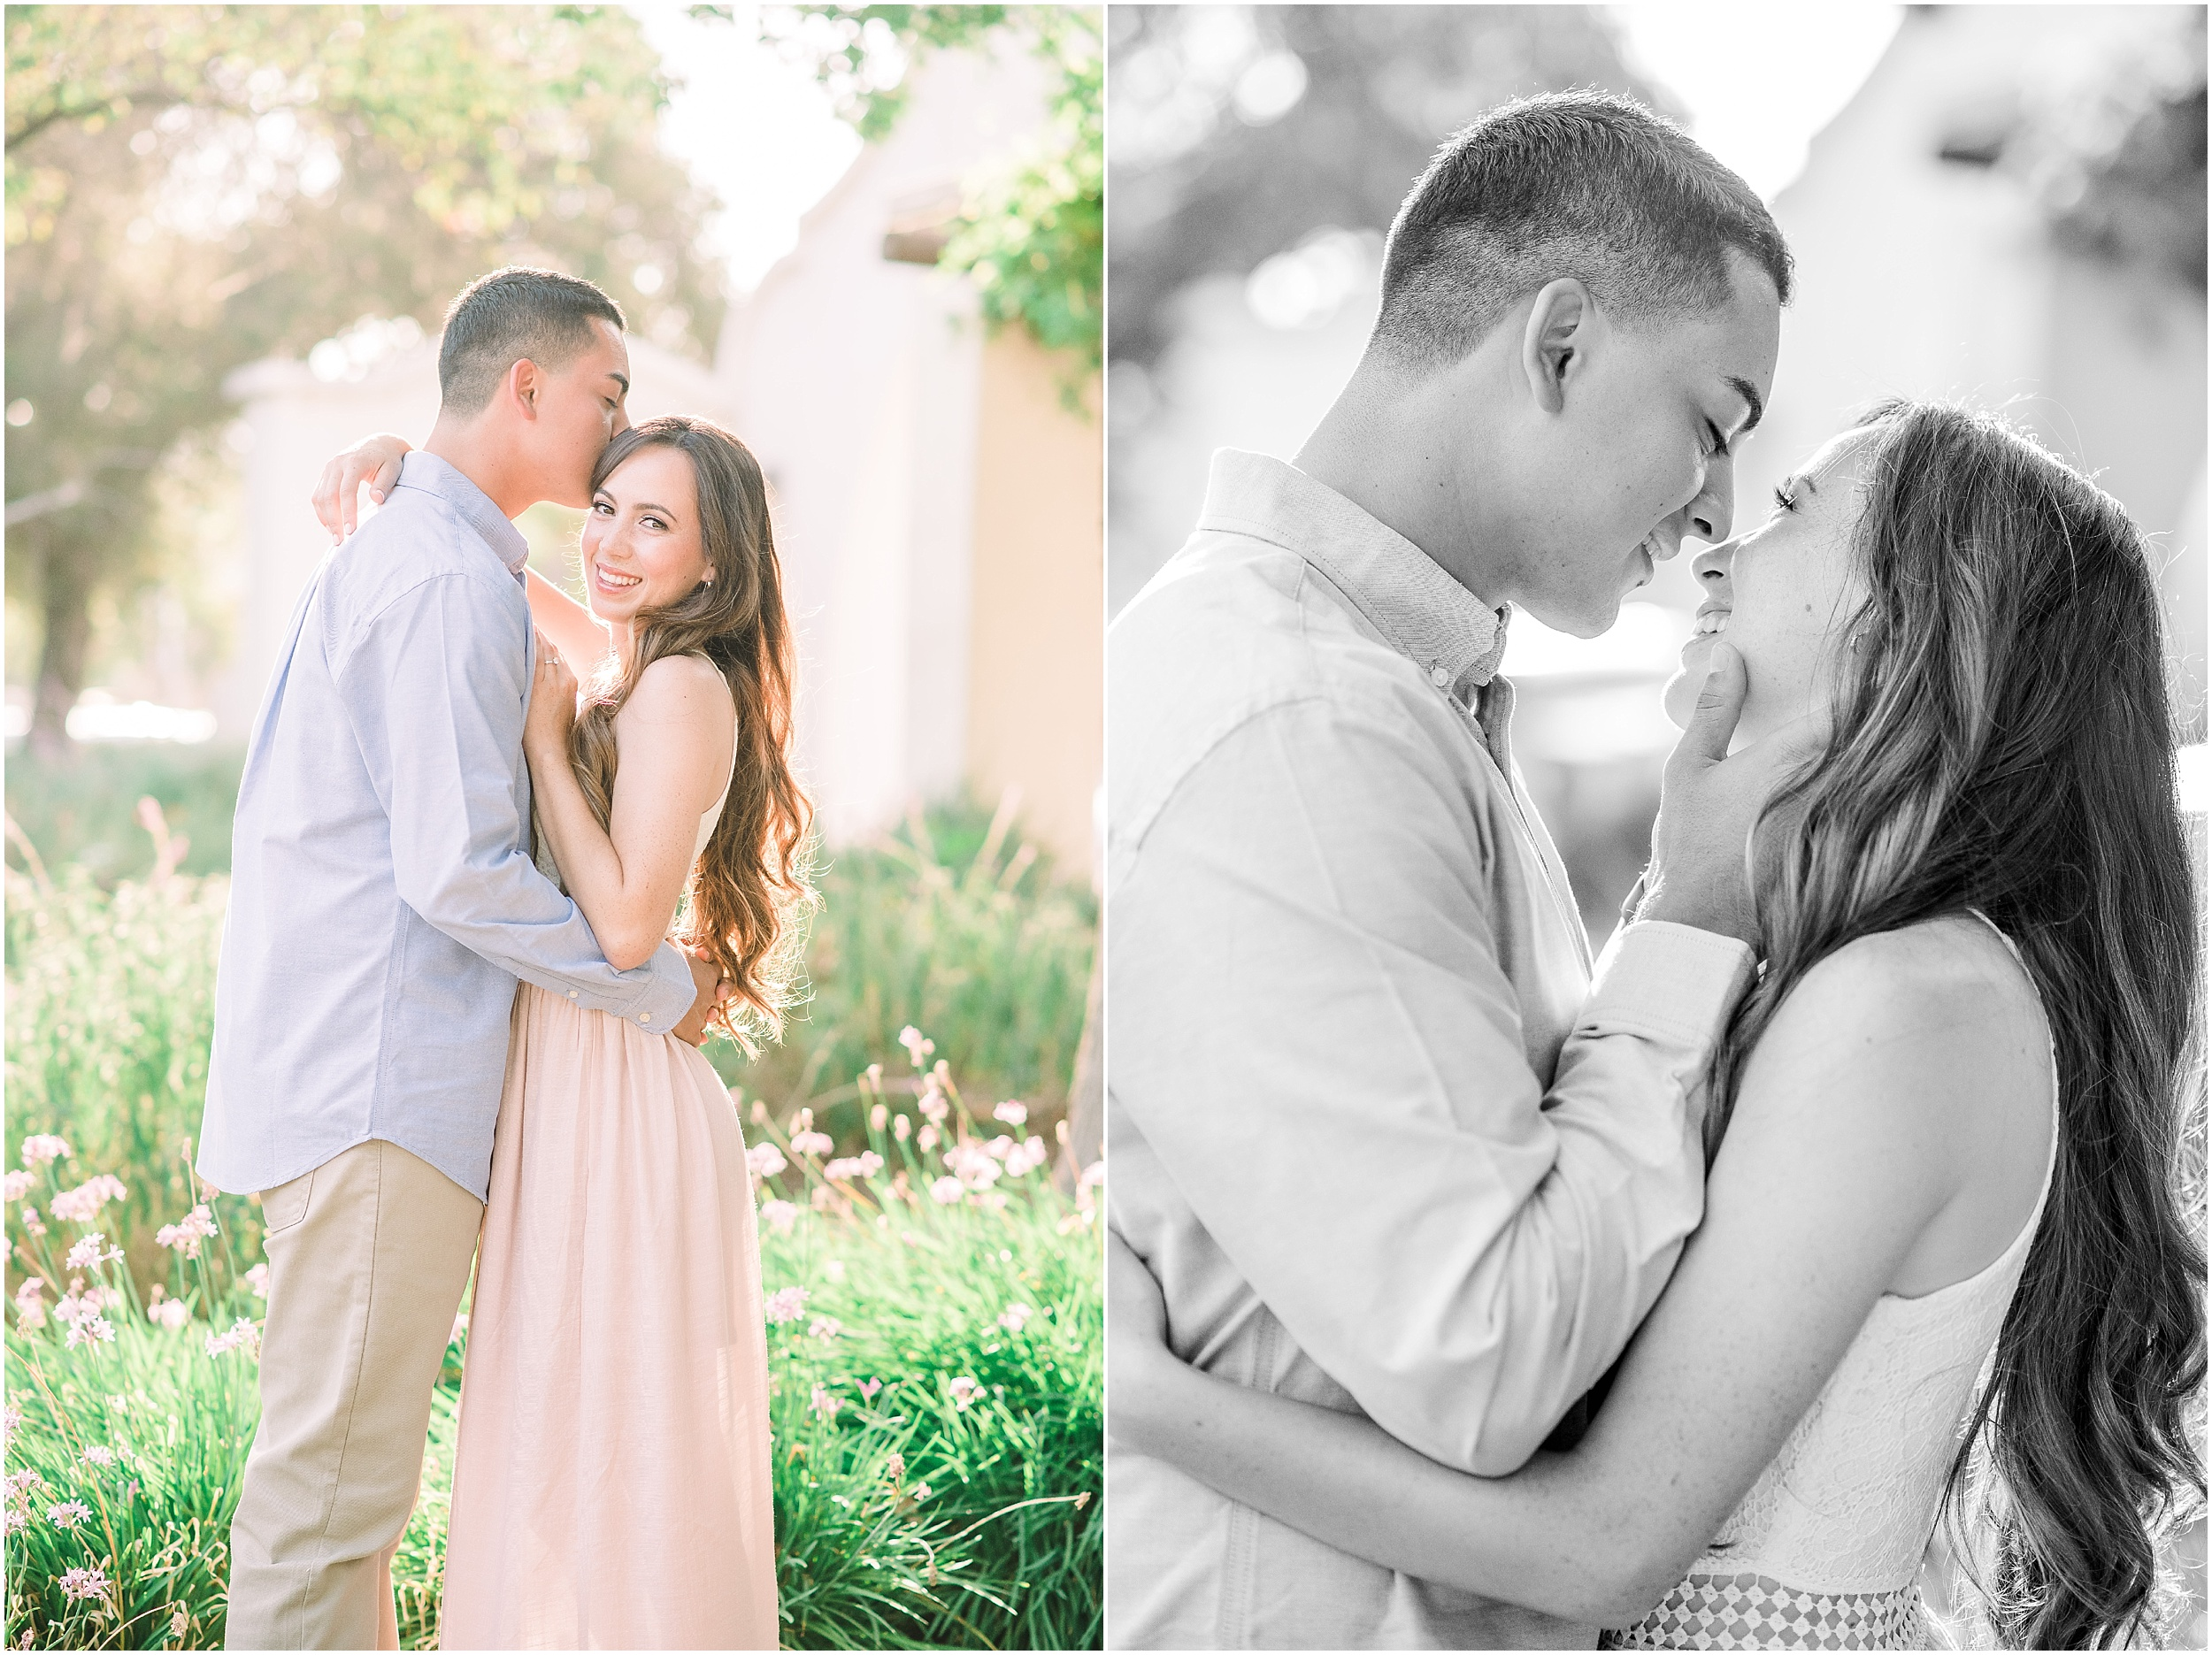 Valeria-Gonzalez-Photography-Wedding-and-Portrait-Photographer-Richmond-Virginia-Engagement-Session-in-Ojai-California_0005.jpg